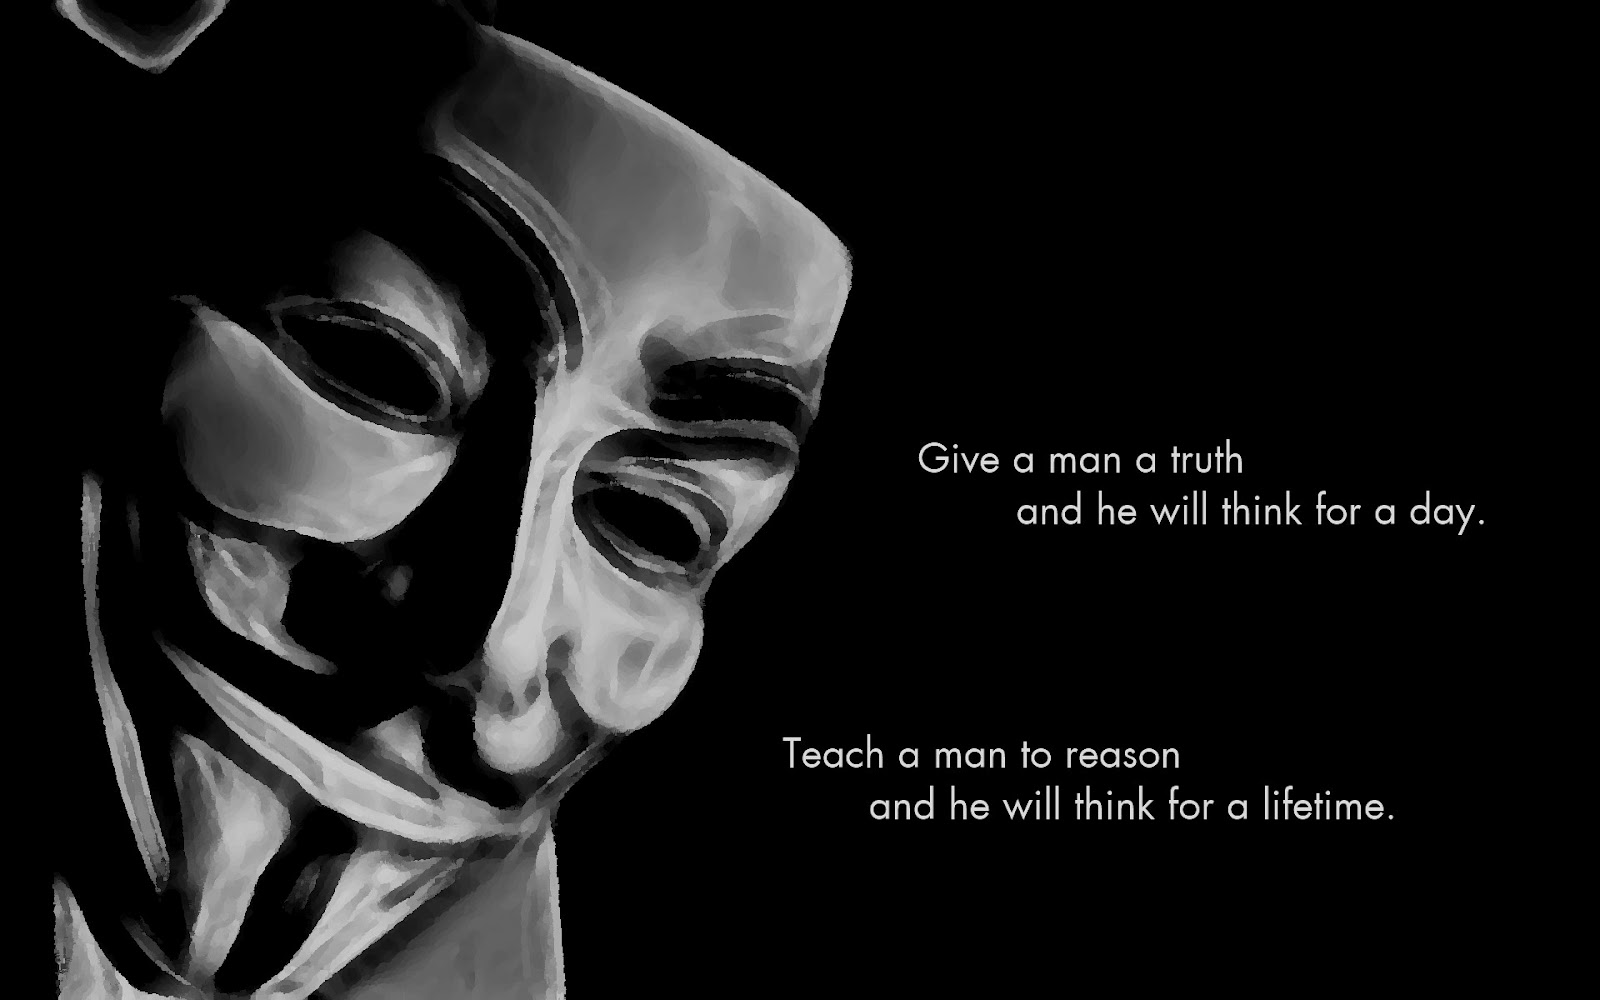 Wallpaper HD 2016 17 WALPAPER HACKER ANONYMOUS HITAM